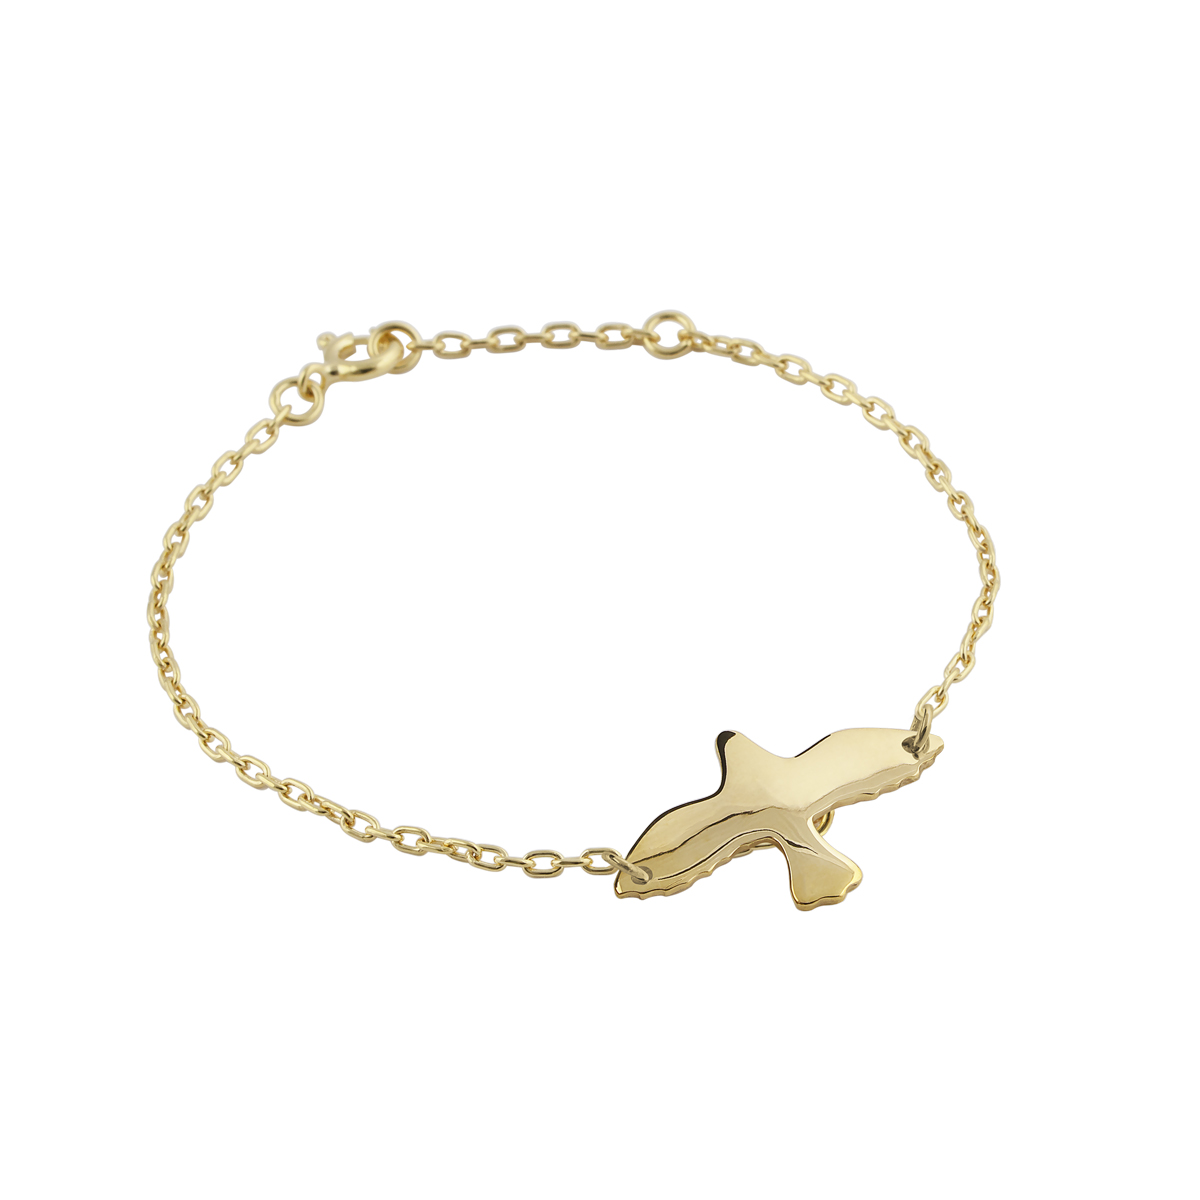 GOLDEN DOVE BRACELET in the group SHOP / BRACELETS at EMMA ISRAELSSON (brace003b)